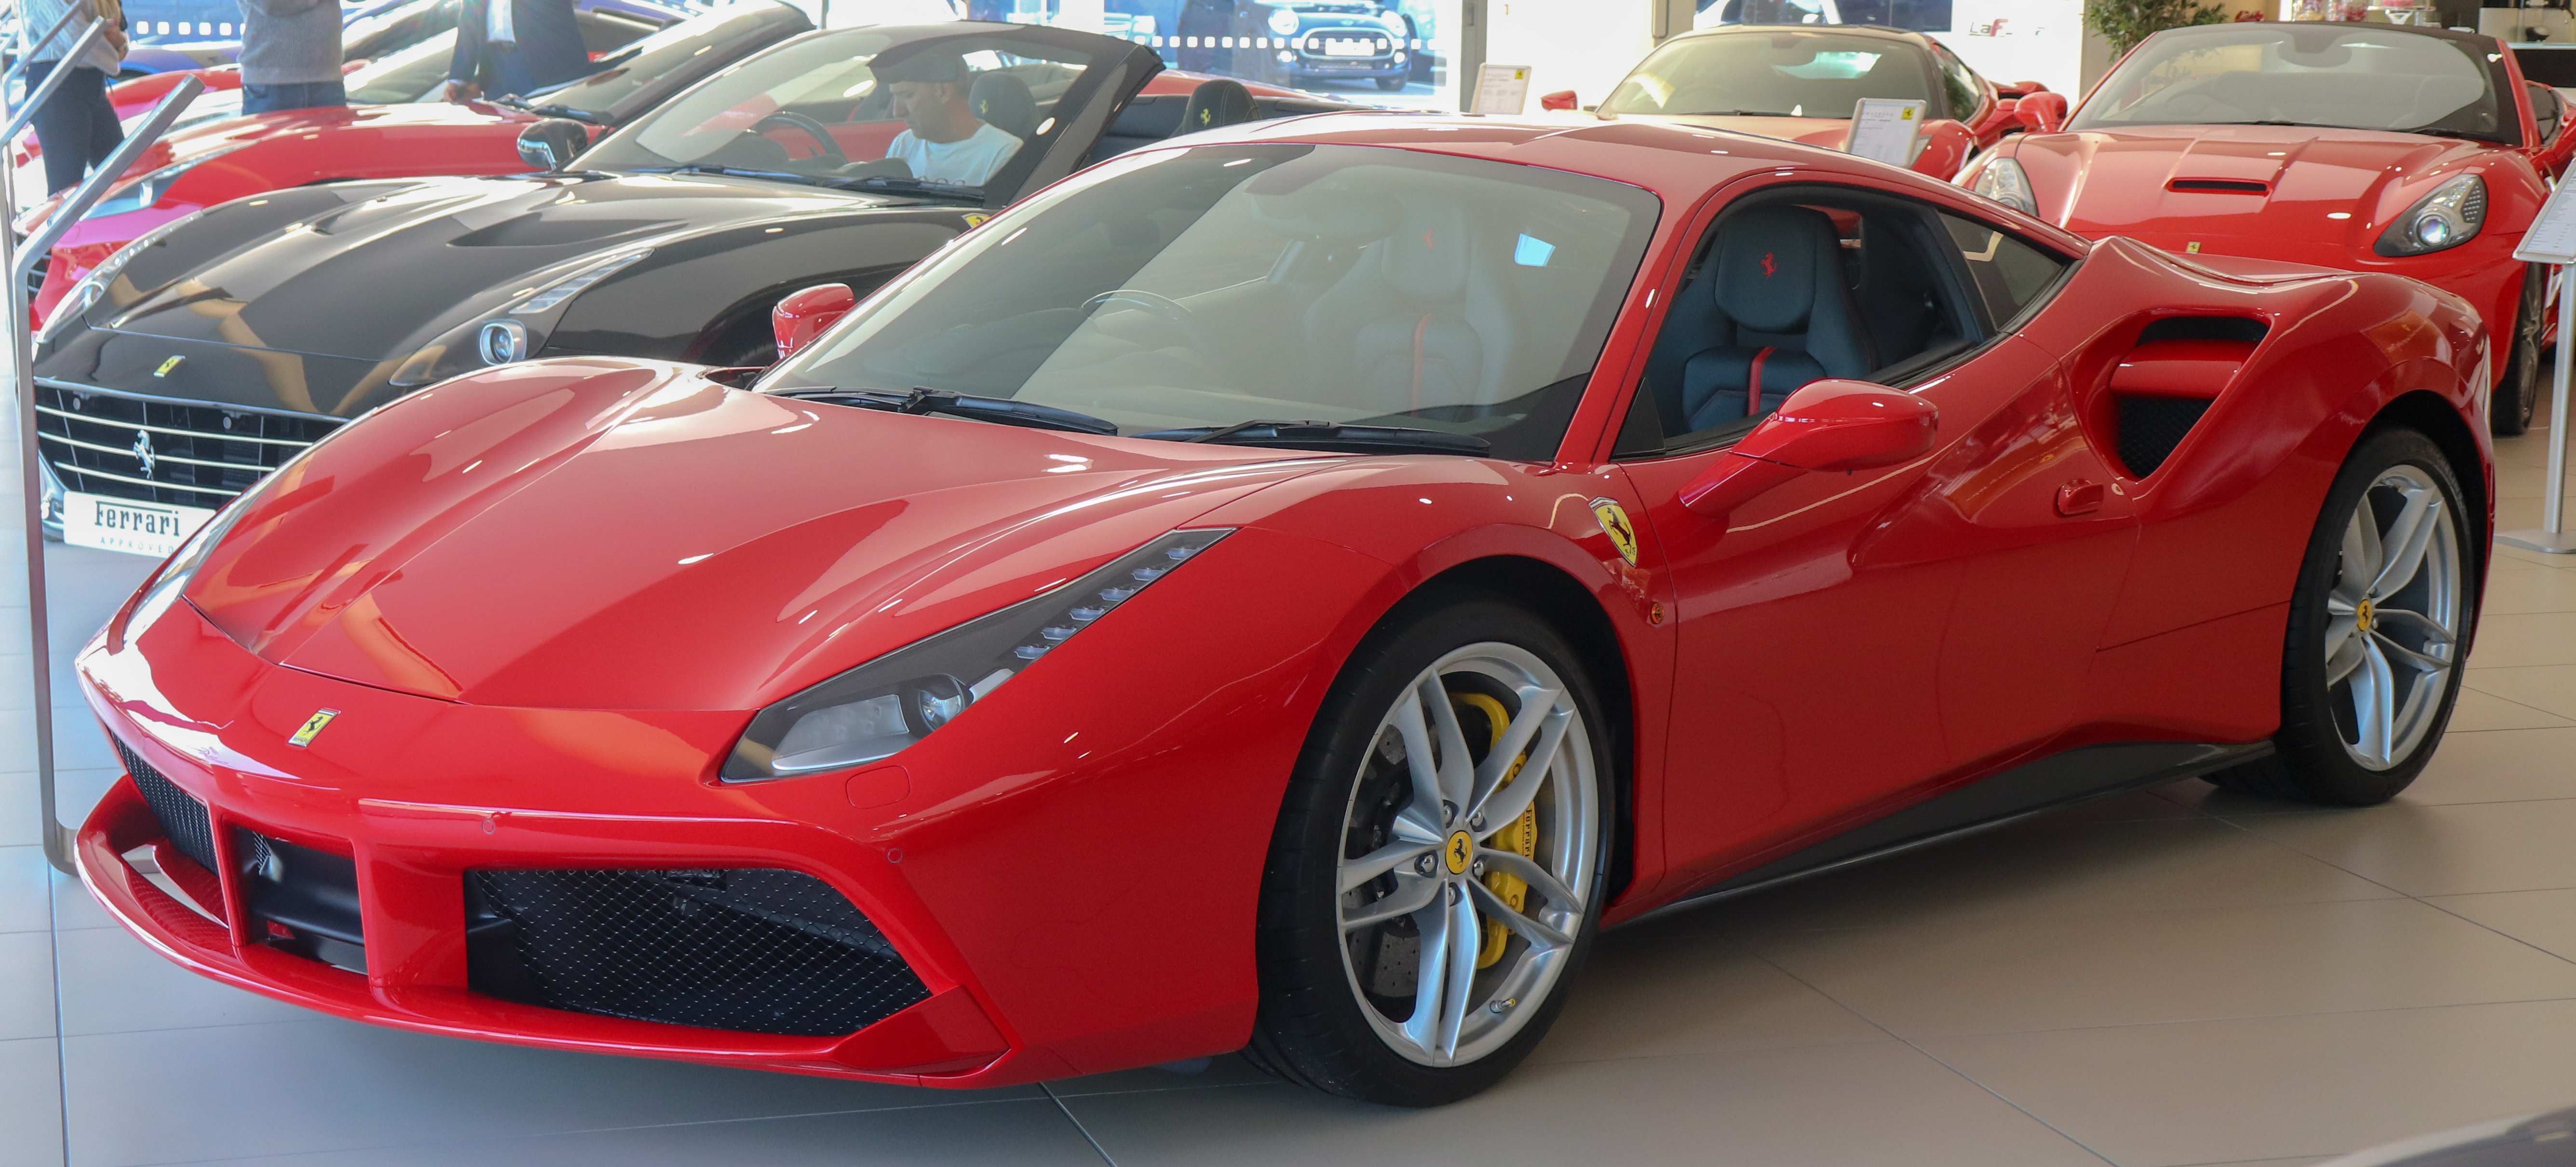 48 The Best 2020 Ferrari 488 GTB Performance And New Engine